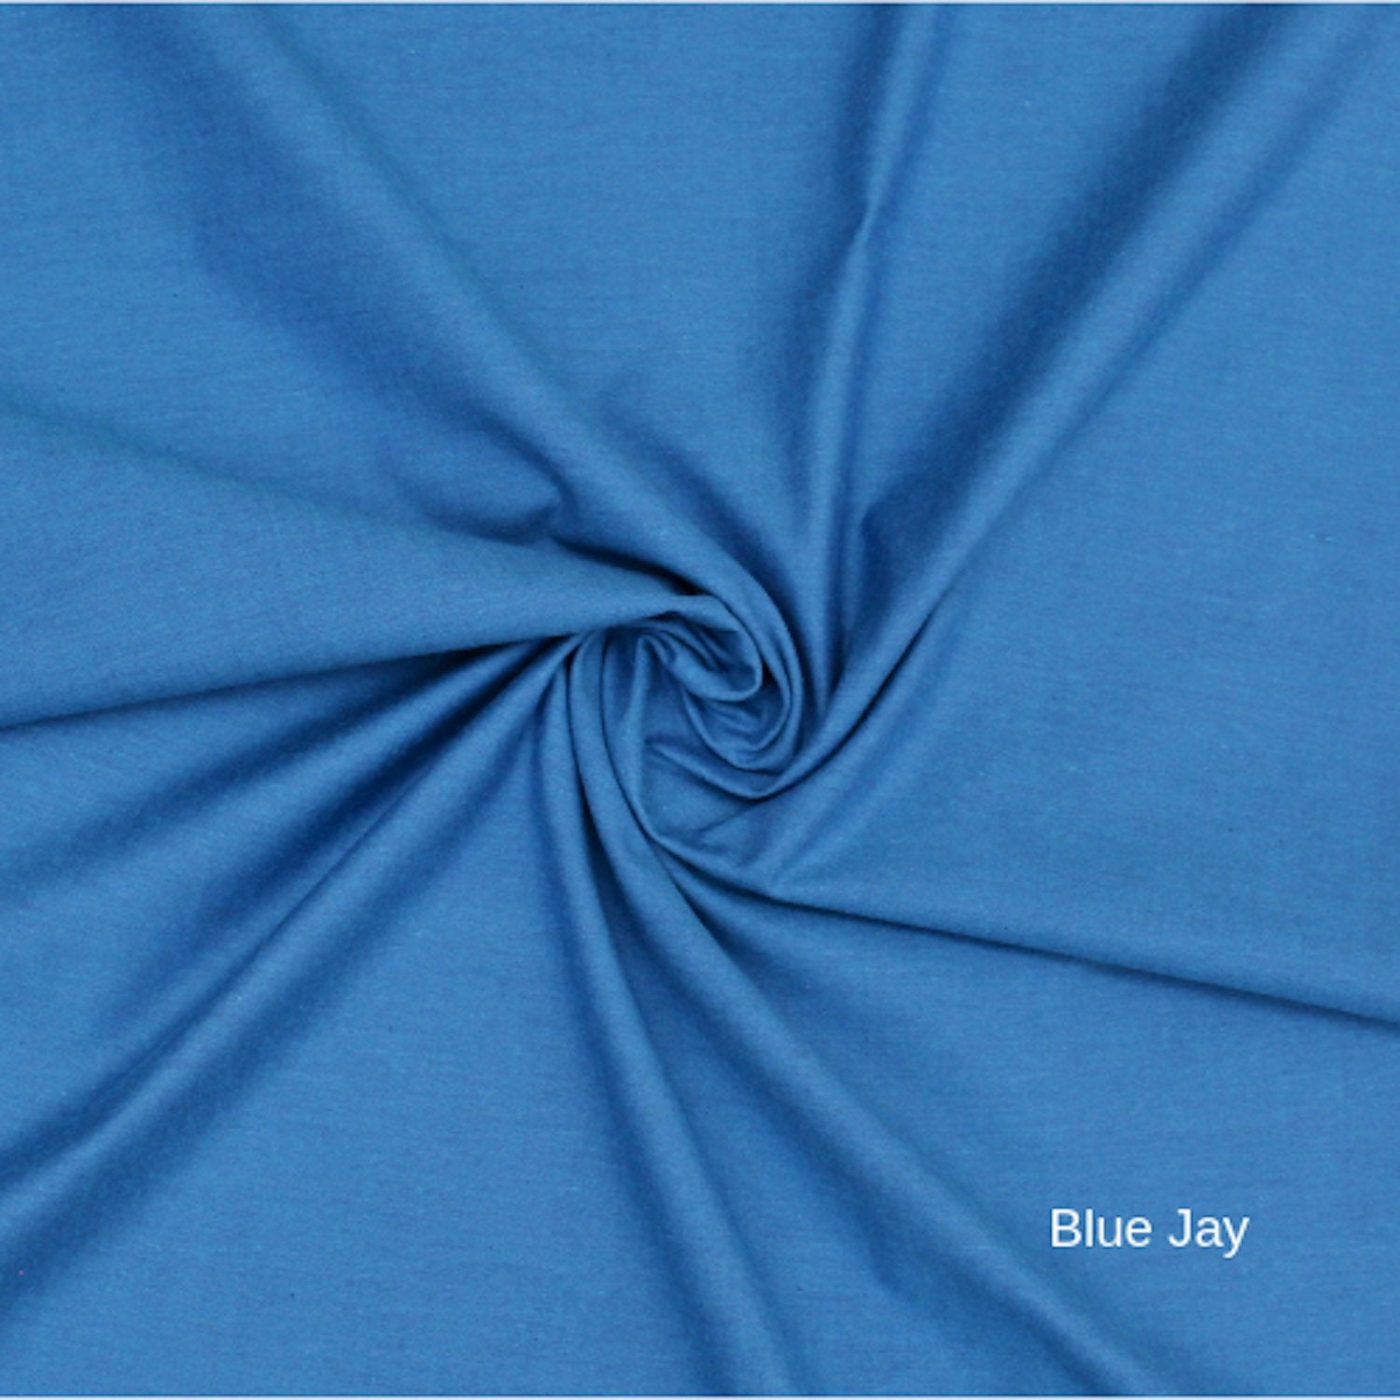 Blue Jay Peppered Cotton Fabric